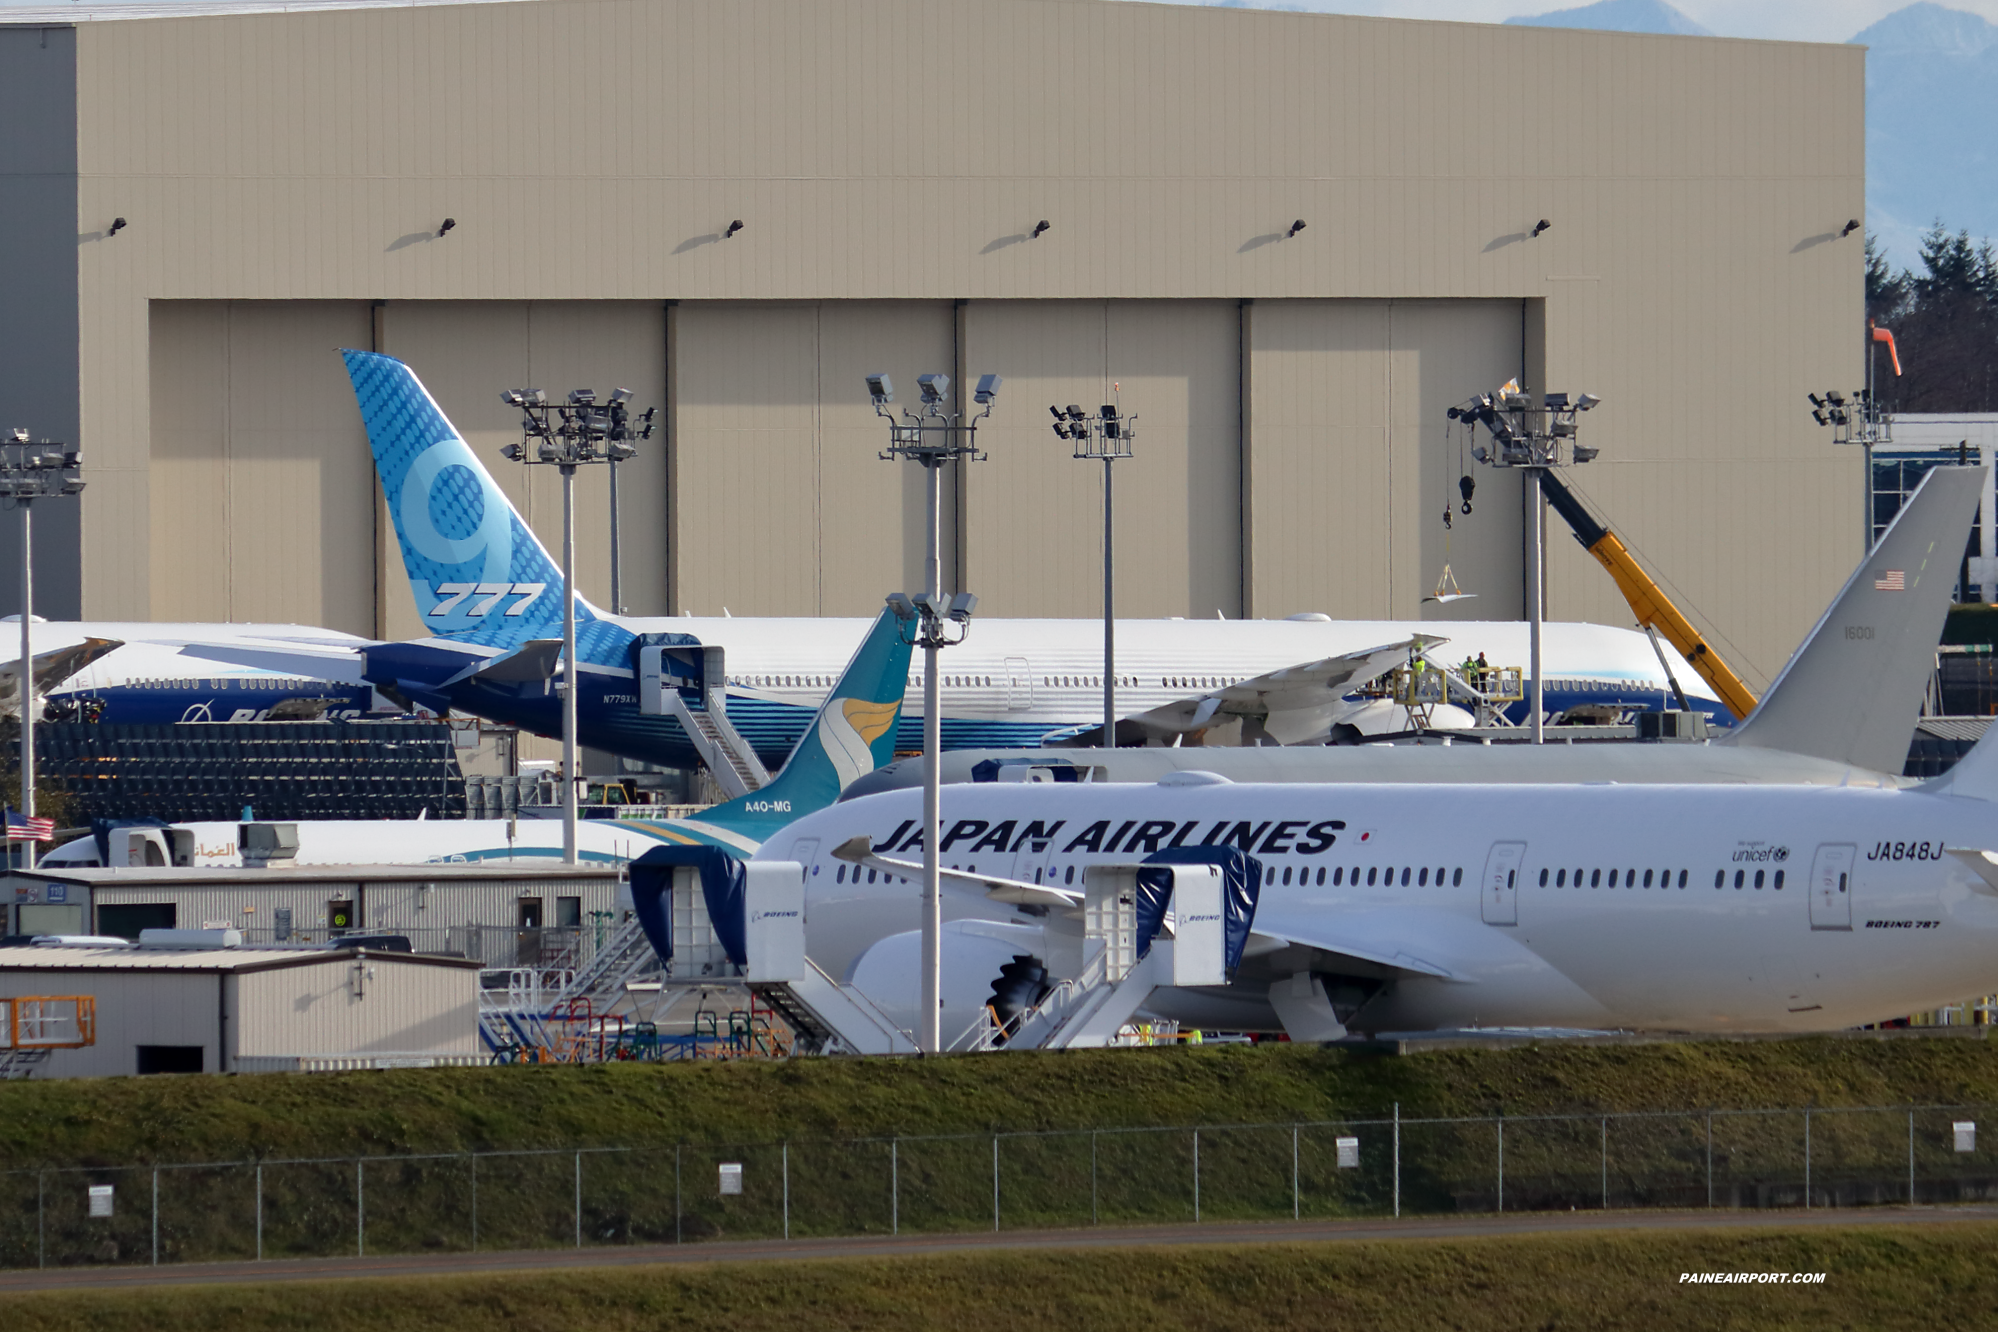 777-9 N779XW at Paine Field